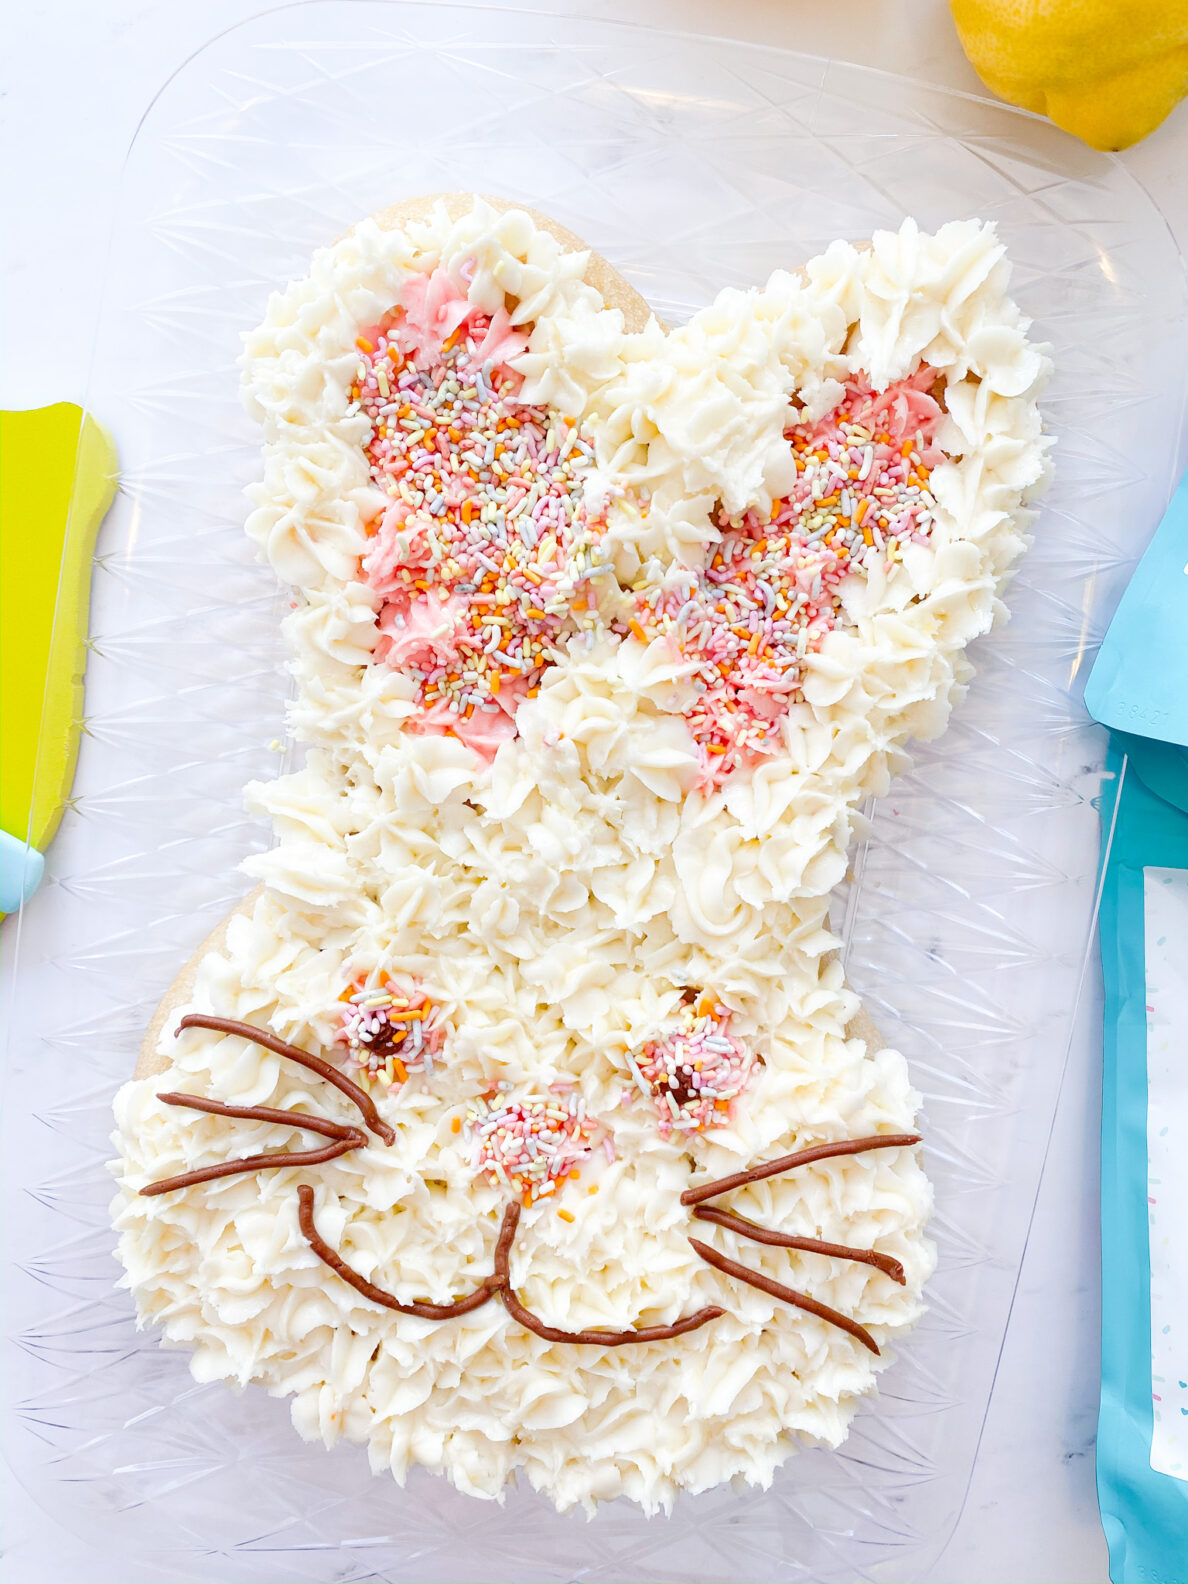 Kate's Safe & Sweet - Easter bunny cake